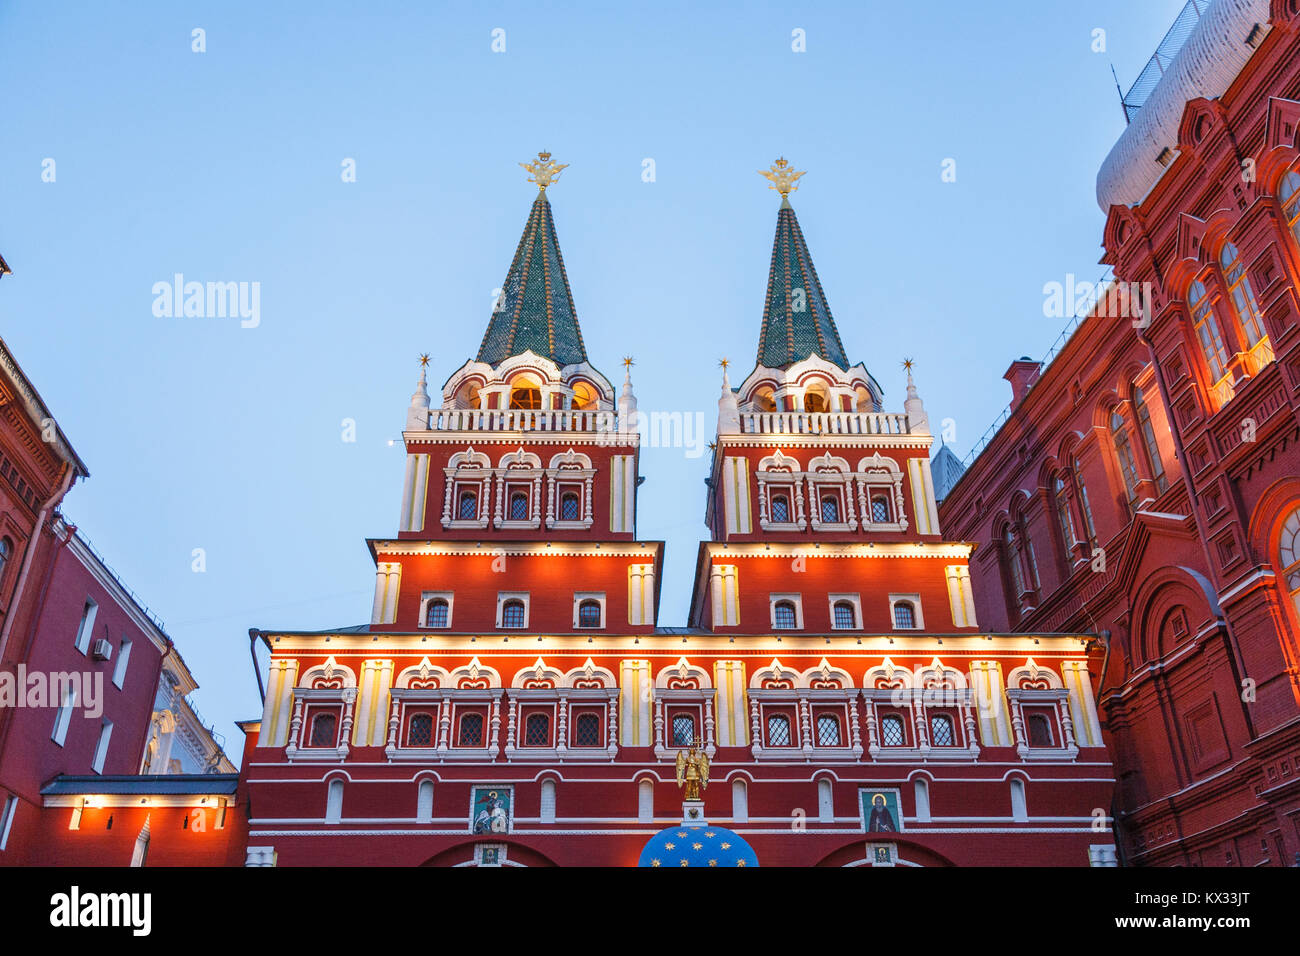 Iconic towers at the entrance gate to Red Square, Moscow, Russia, illuminated in the evening - Stock Image